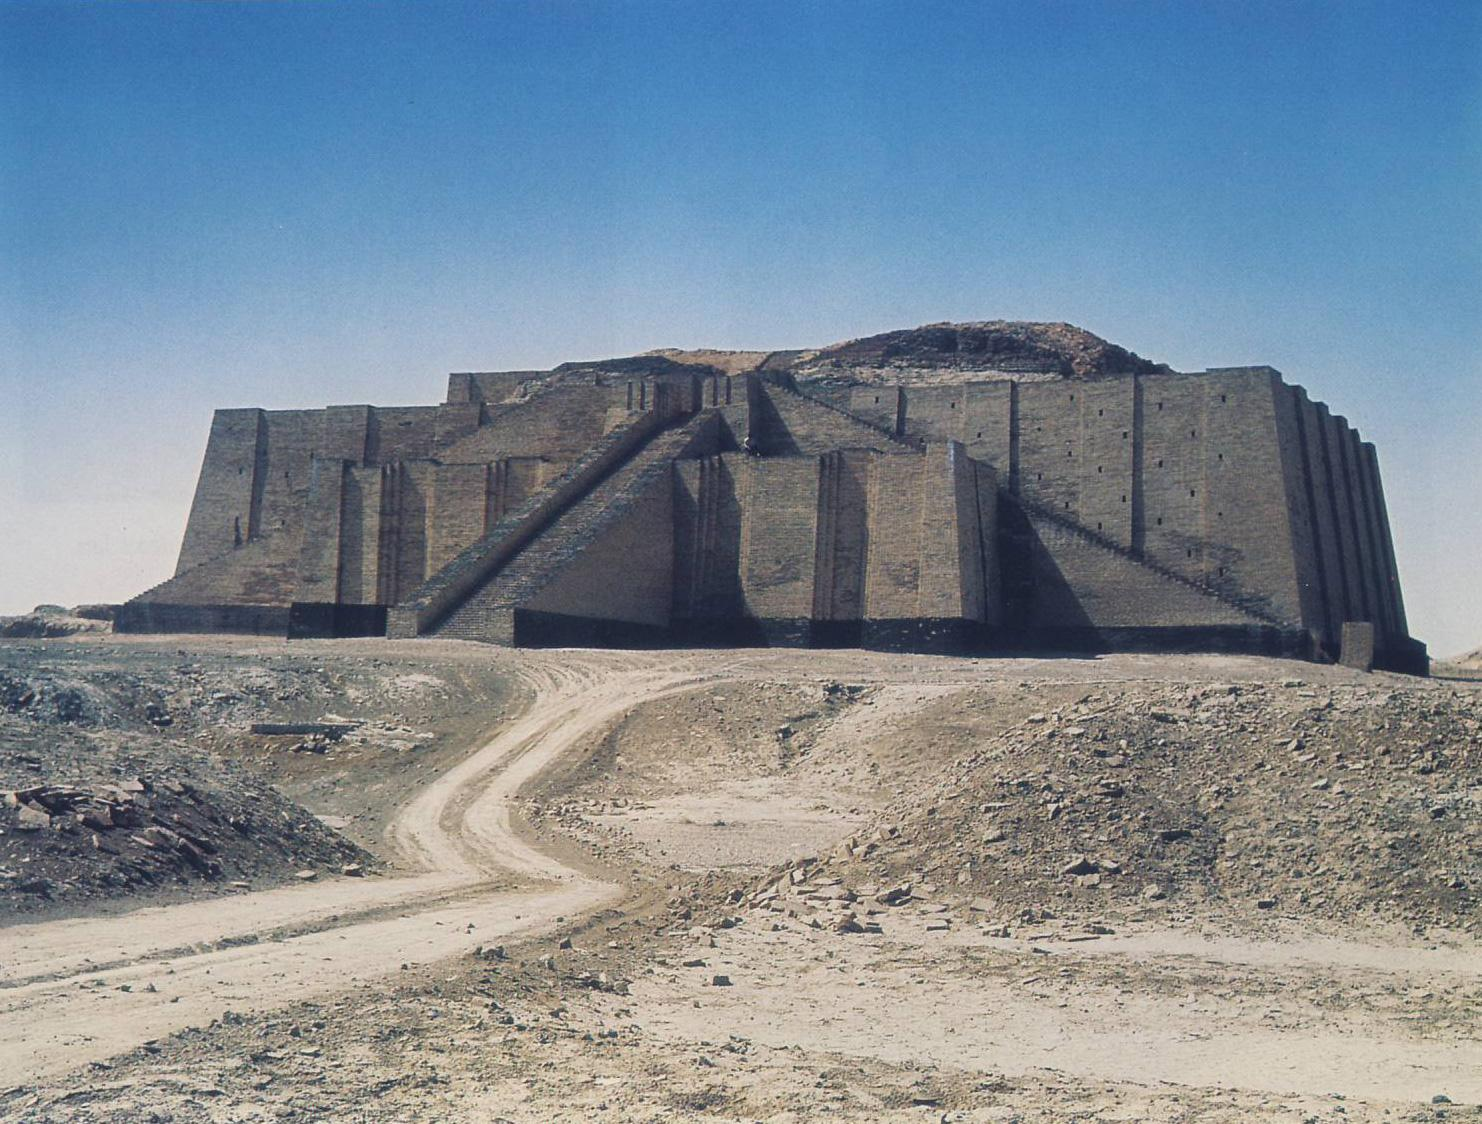 pyramids and the ziggurats The 12 pyramids of thoth i have a nine-foot open-framed pyramid constructed of four poles attached to each other and chain linked together at the bottom.